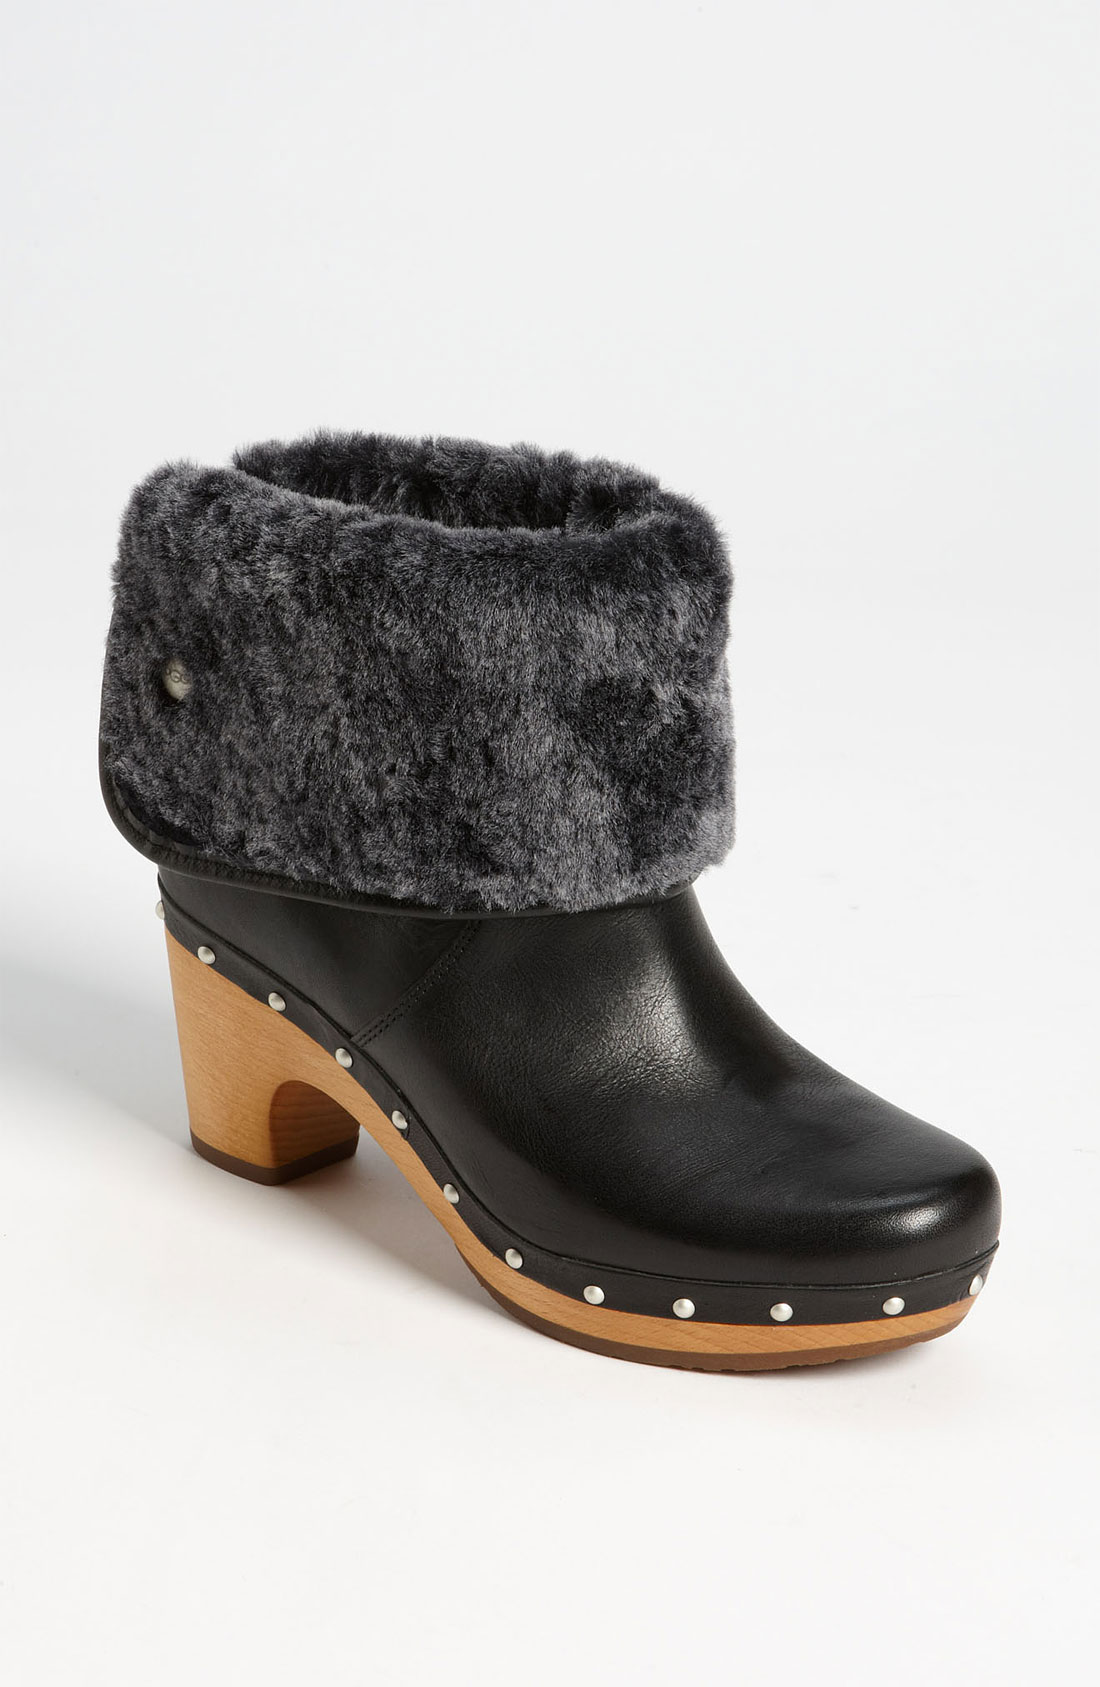 Ugg Lynnea Ii Boot In Black Lyst